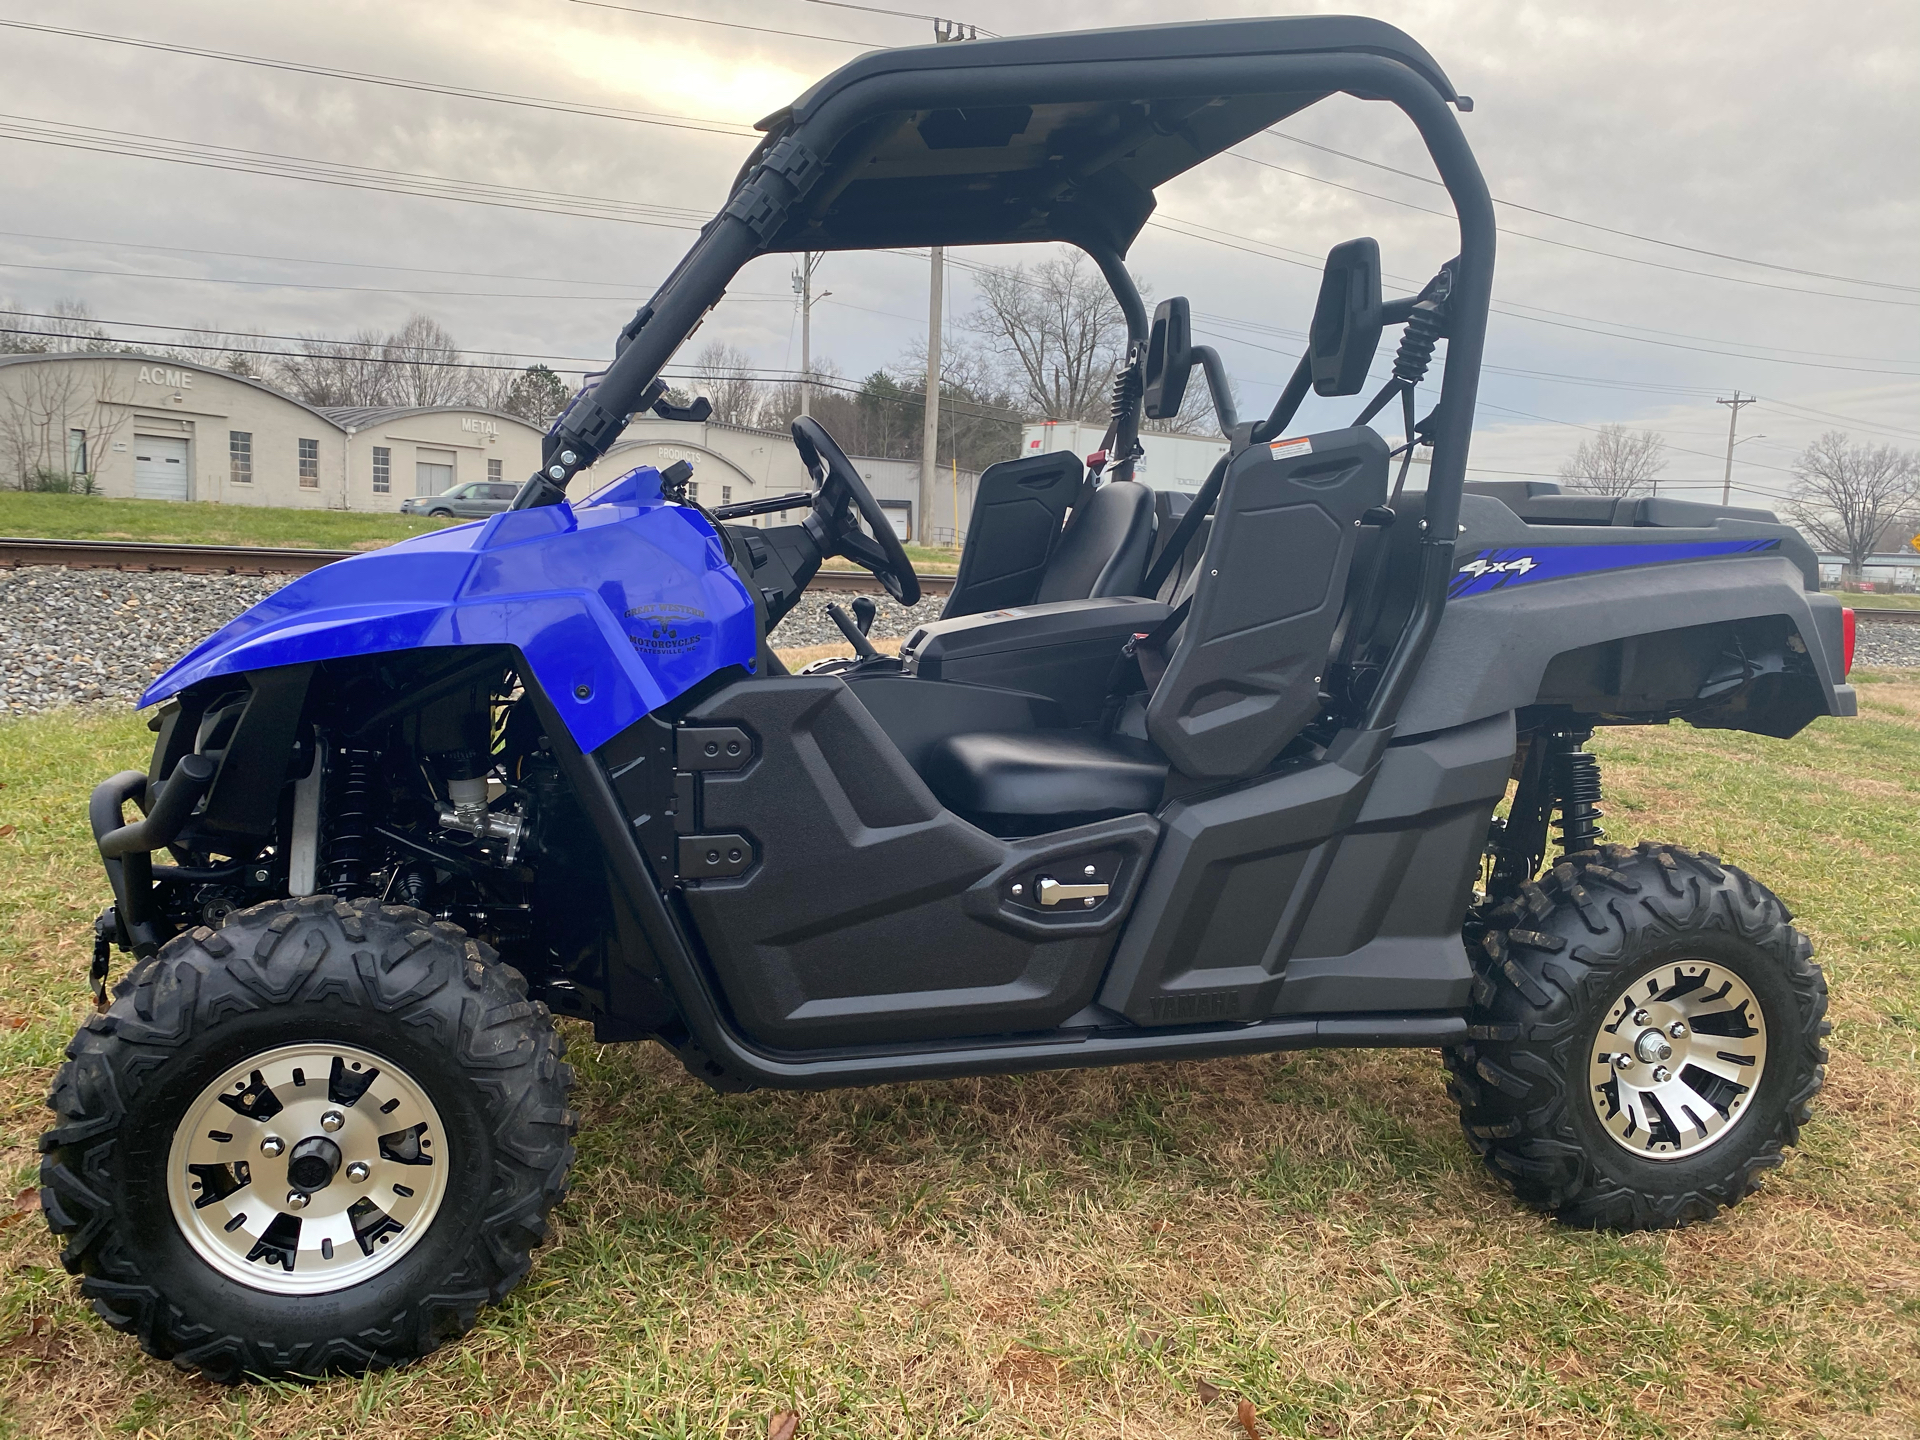 2017 Yamaha Wolverine EPS in Statesville, North Carolina - Photo 1